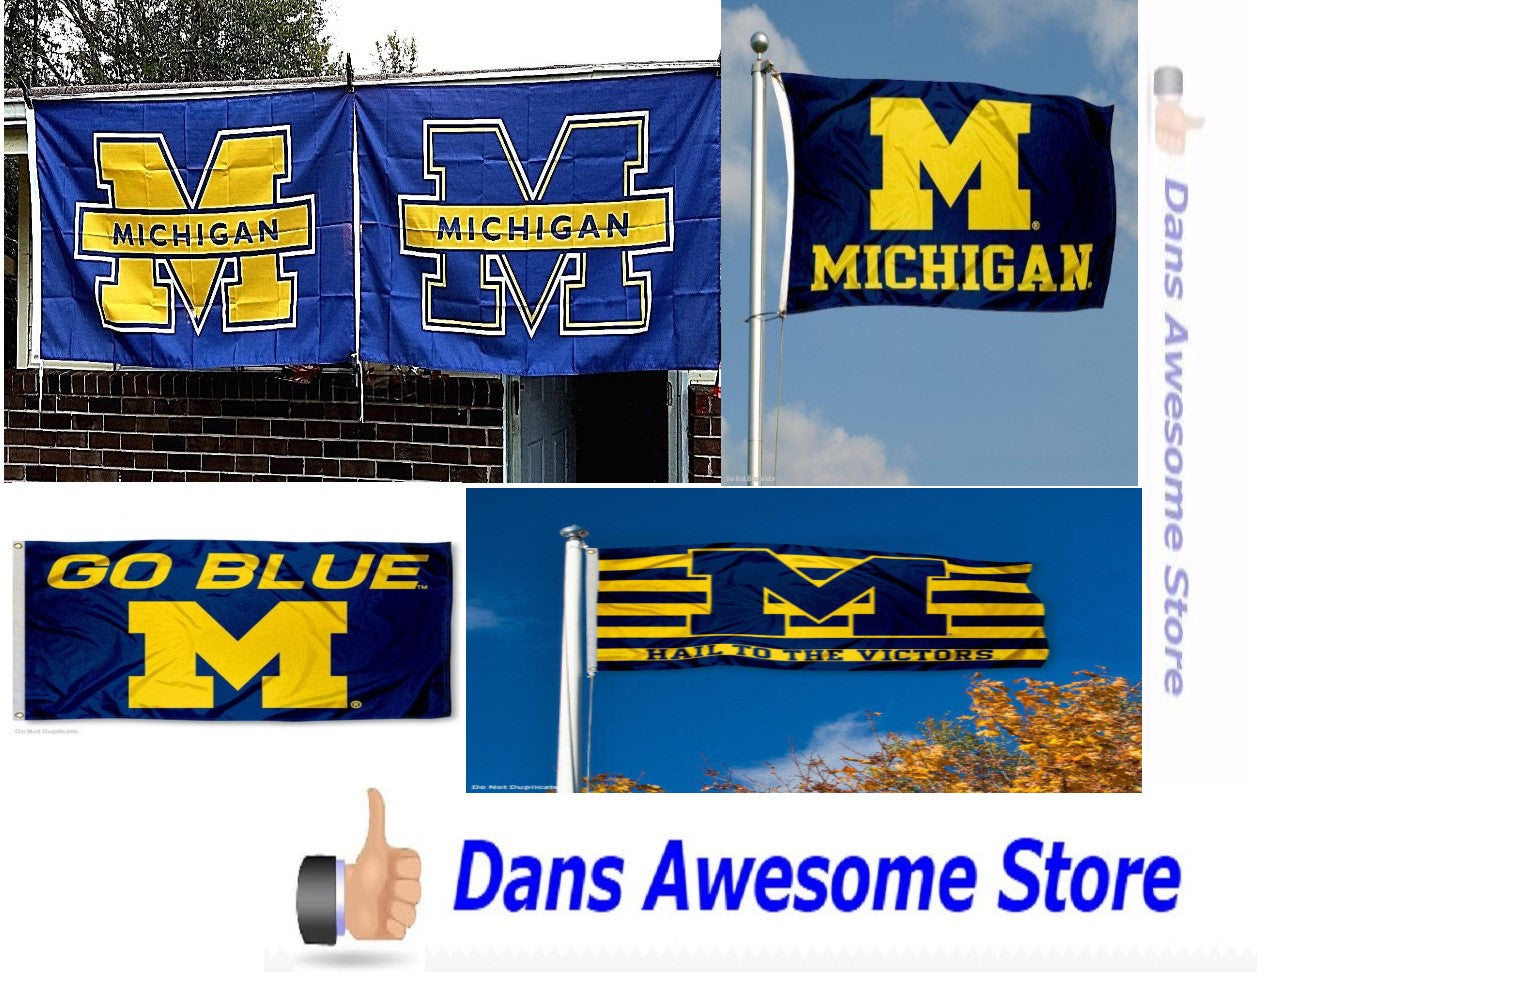 Michigan Flag - Dans Awesome Store